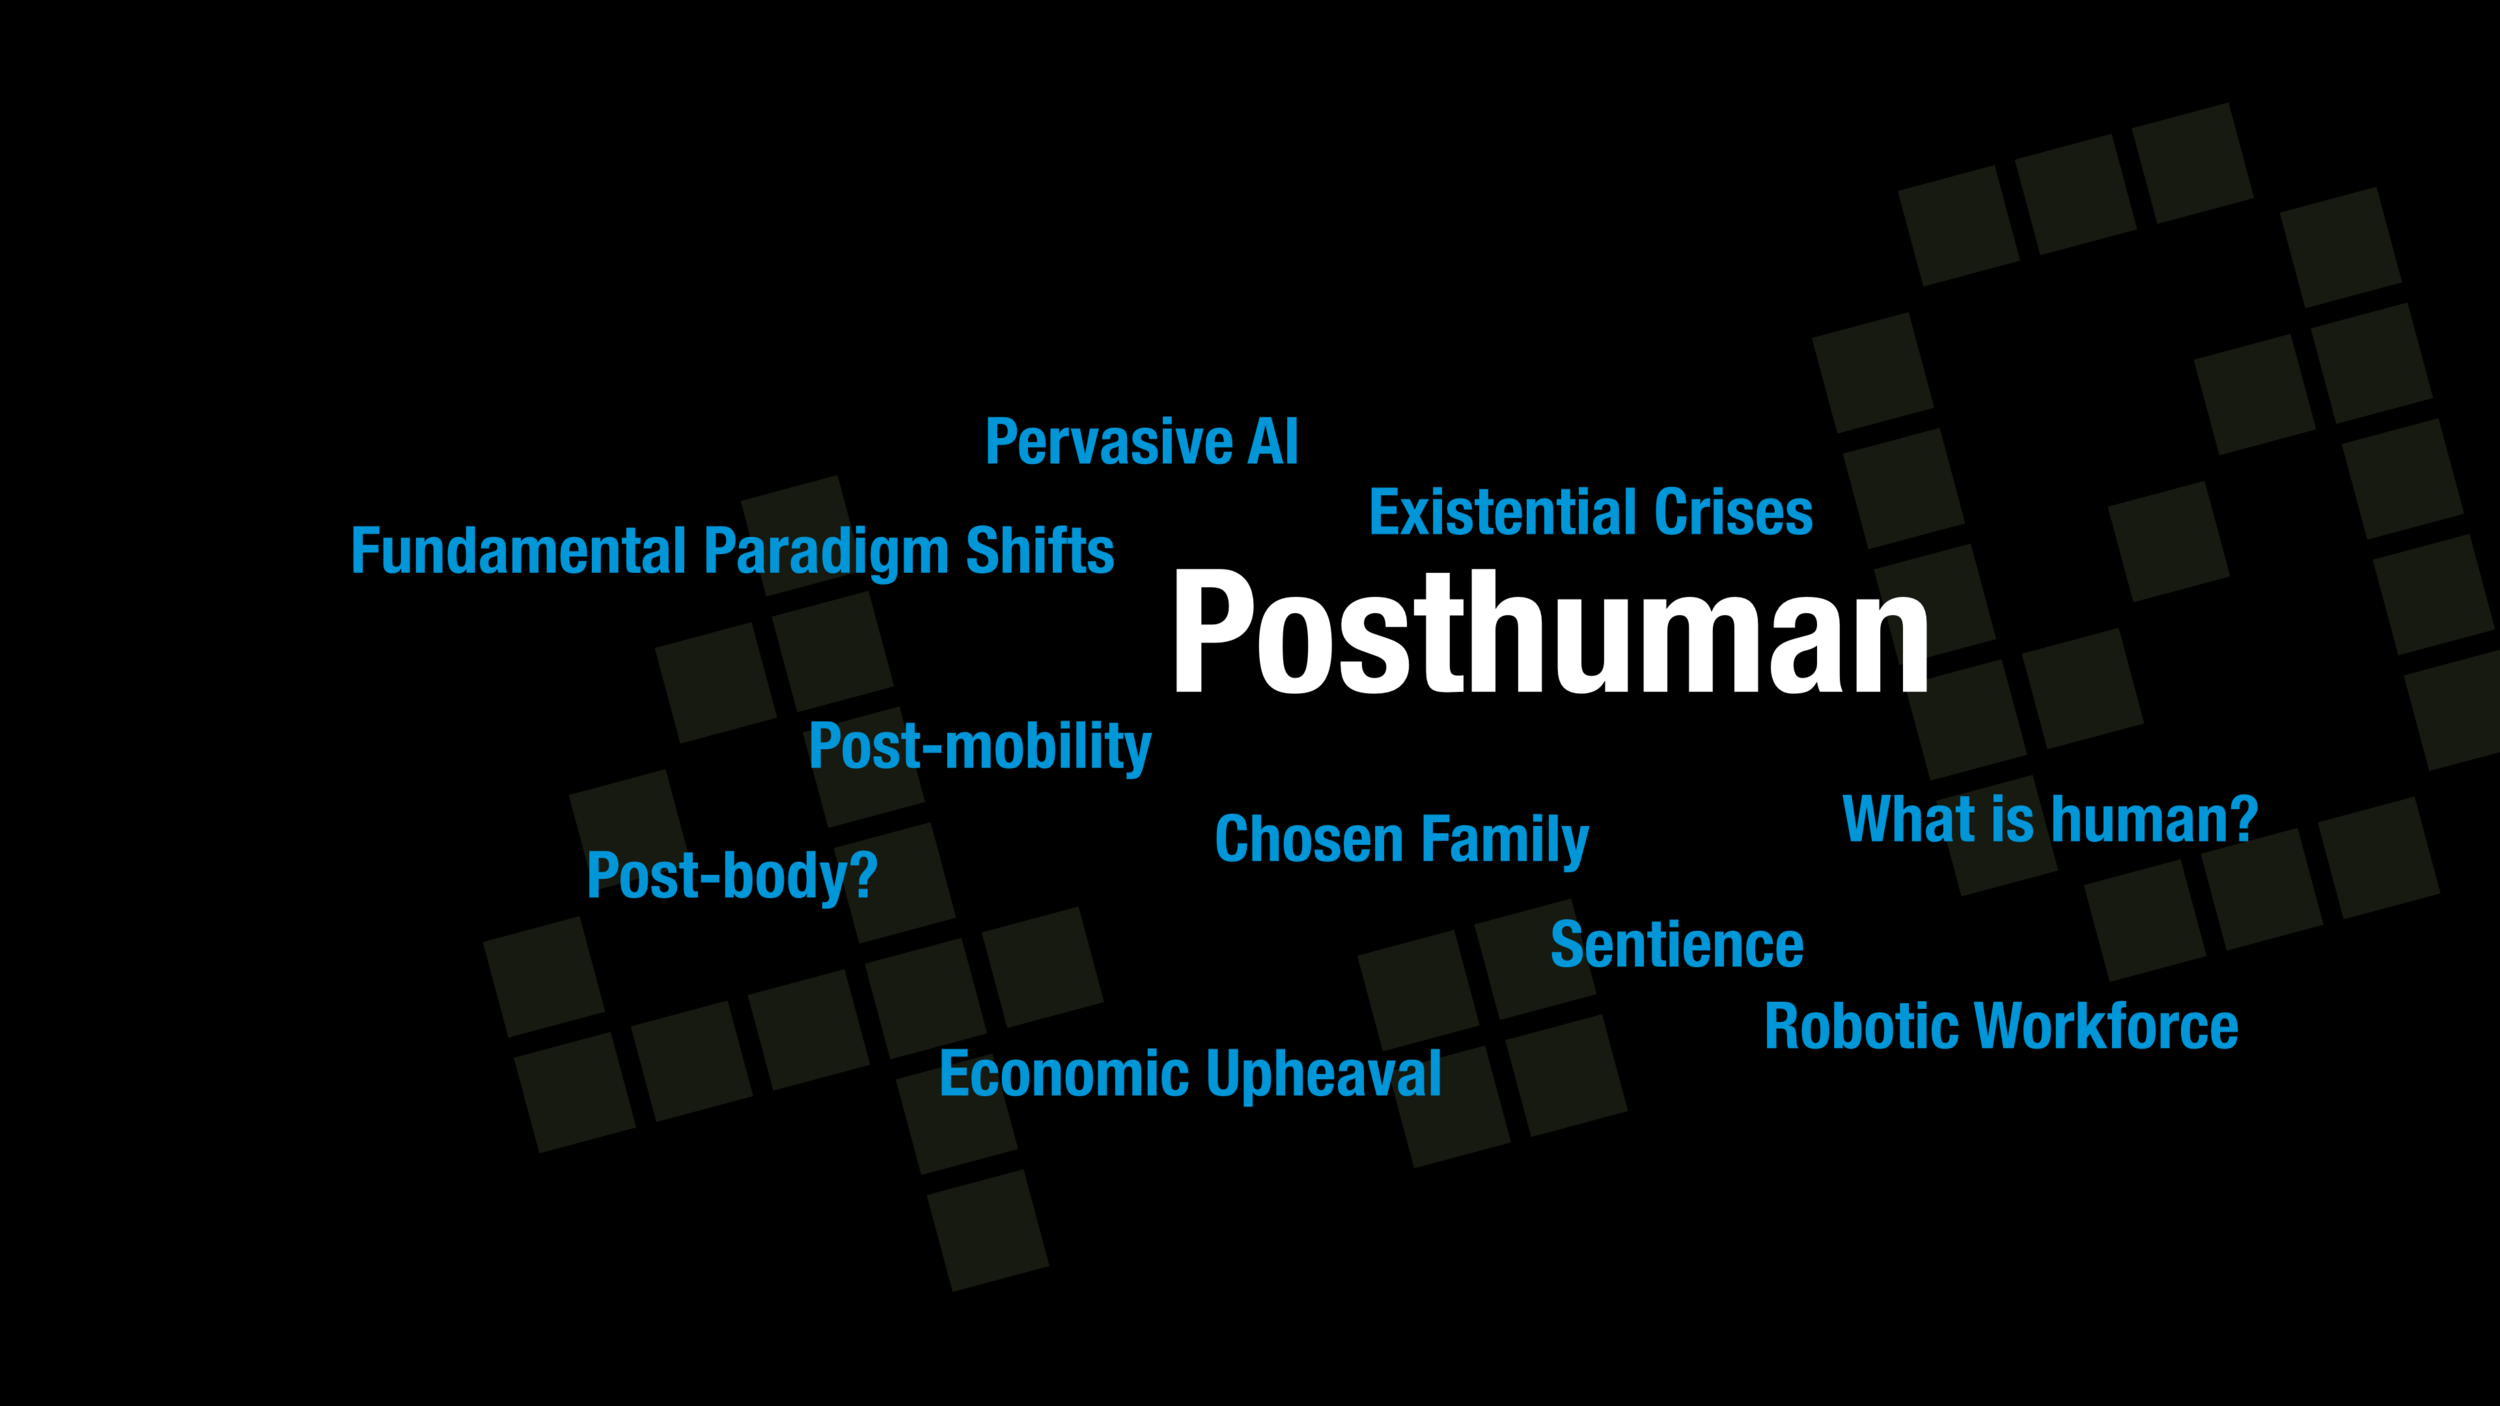 At the post-human stage we'll be dealing with pervasive artificial intelligence, major existential crises, fundamental paradigm shifts, and more questions about economic upheaval, bodies, and human beings in general.